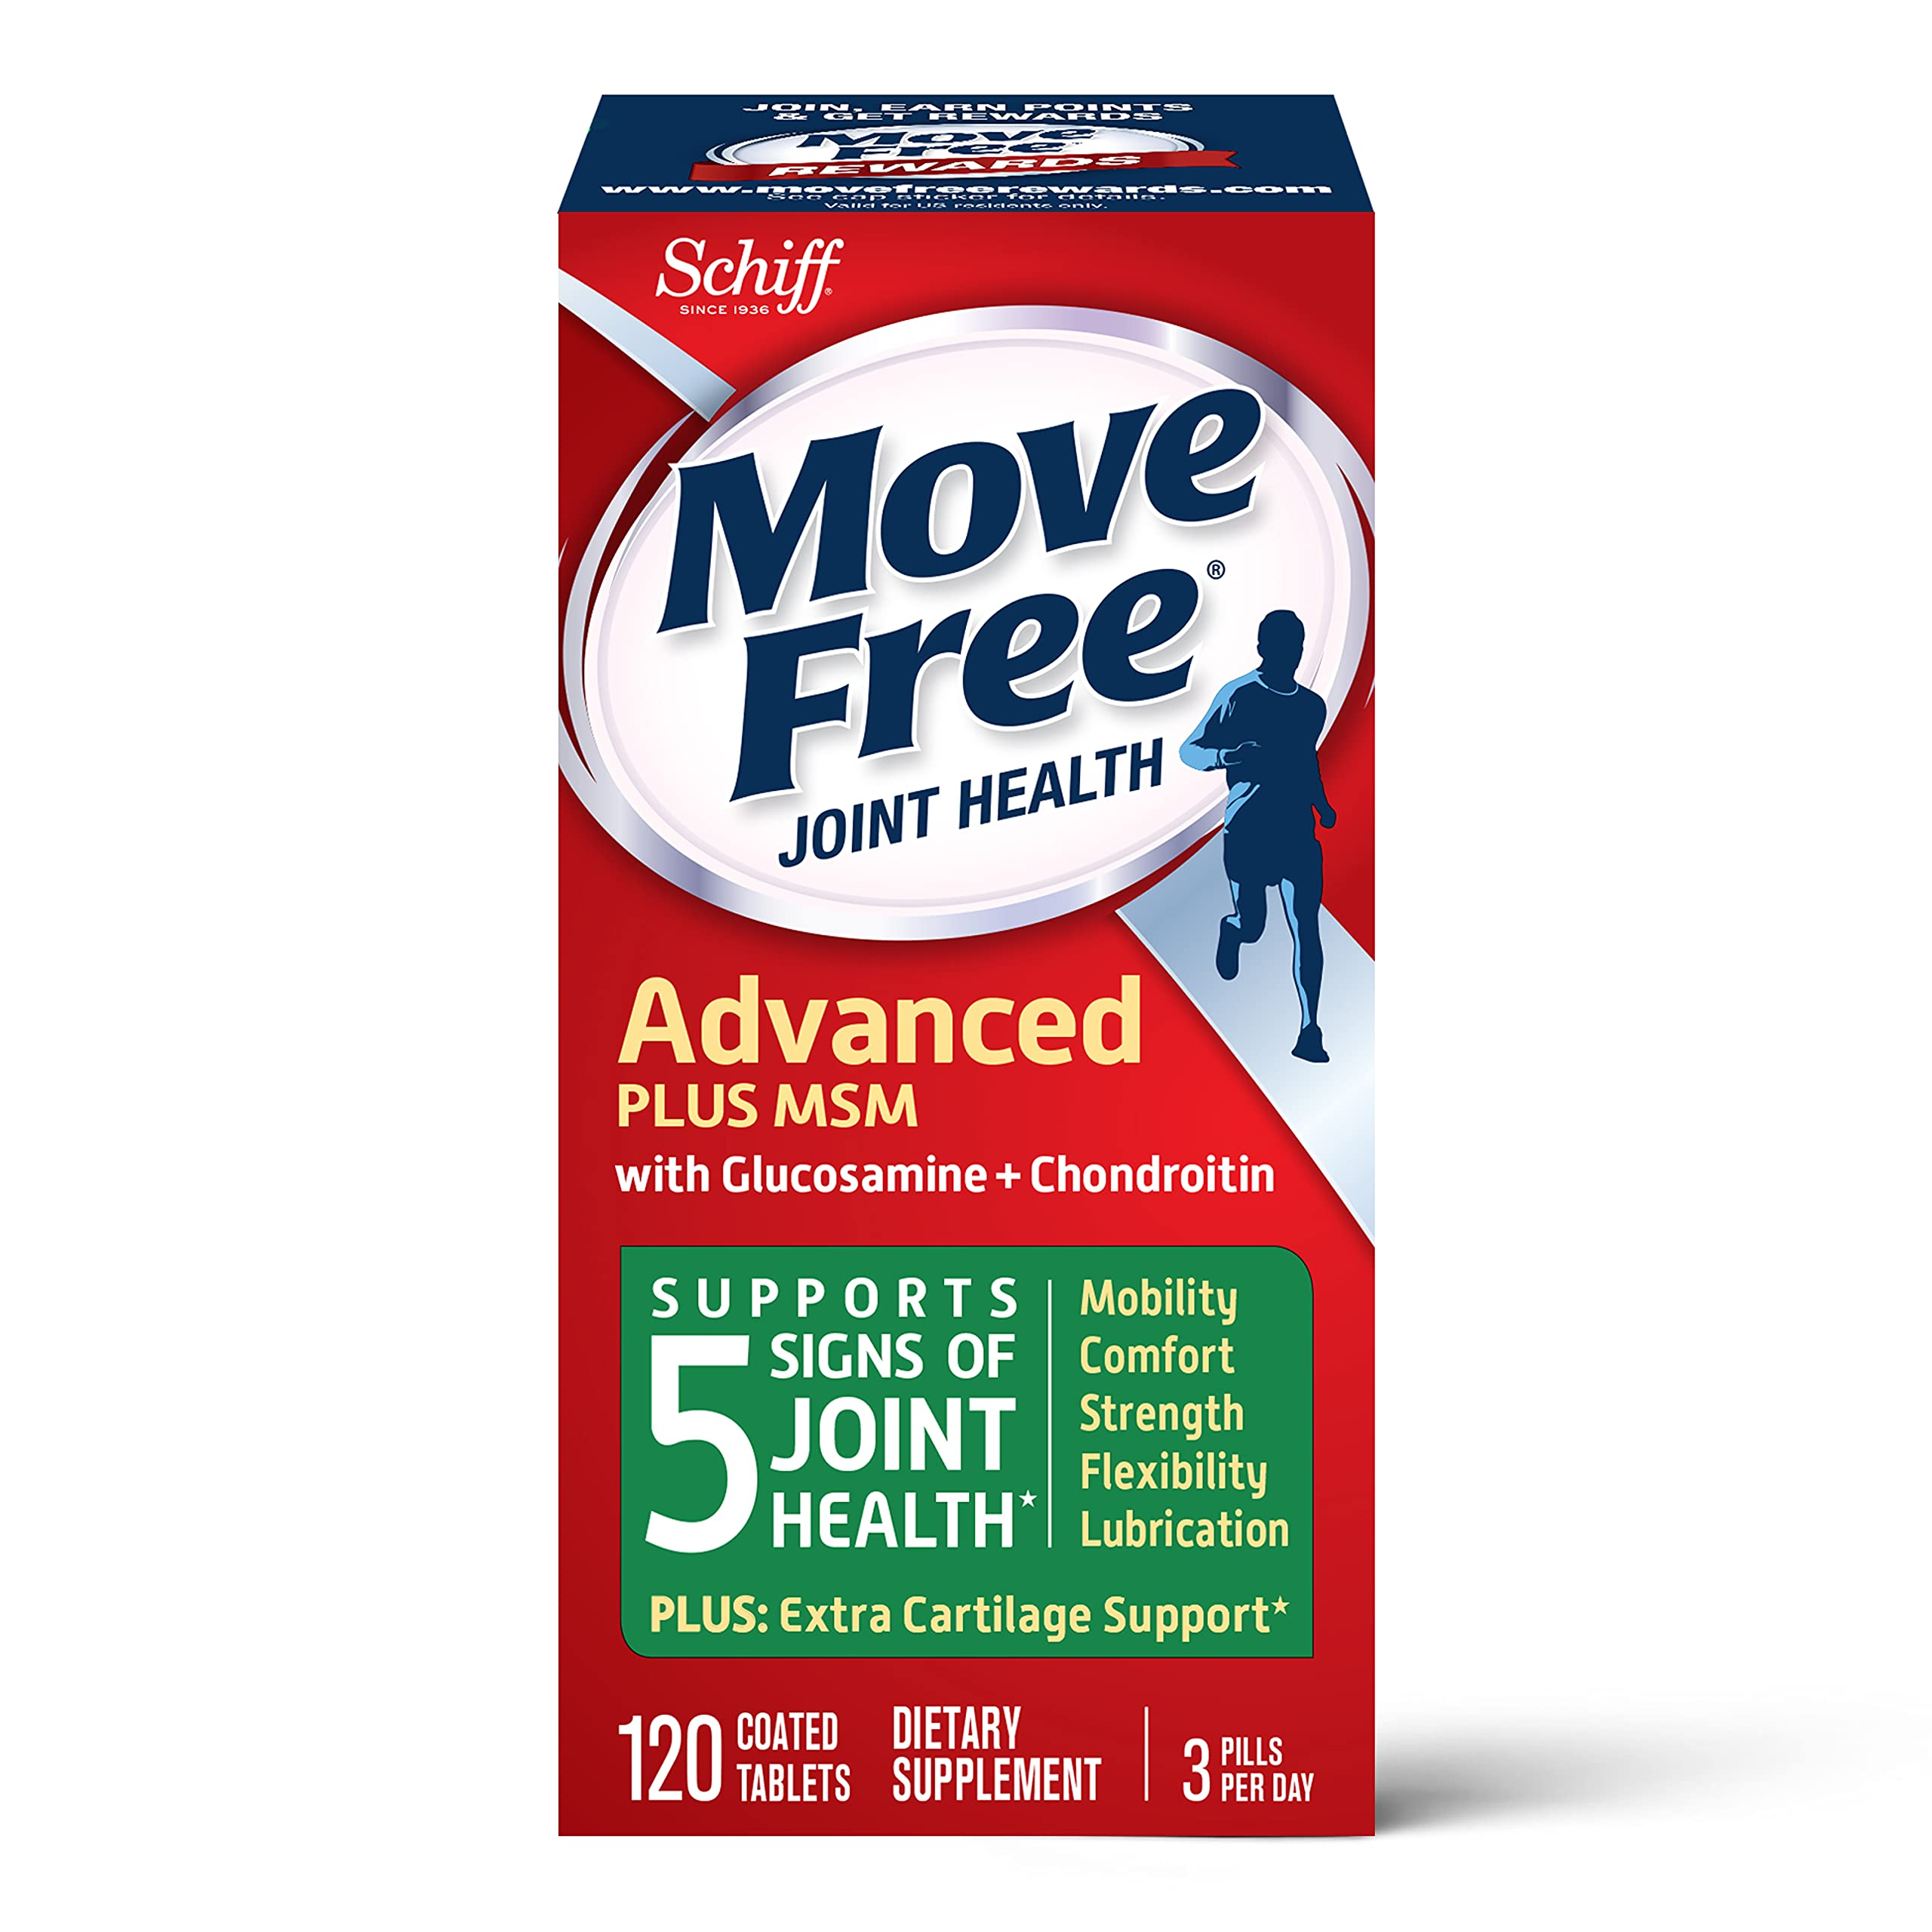 Move Free MSM 1500mg (per serving) With Glucosamine and Chondroitin - Advanced Joint Support Tablets (120 count in a box), Supports Mobility Flexibility Strength Lubrication and Comfort, Cartilage